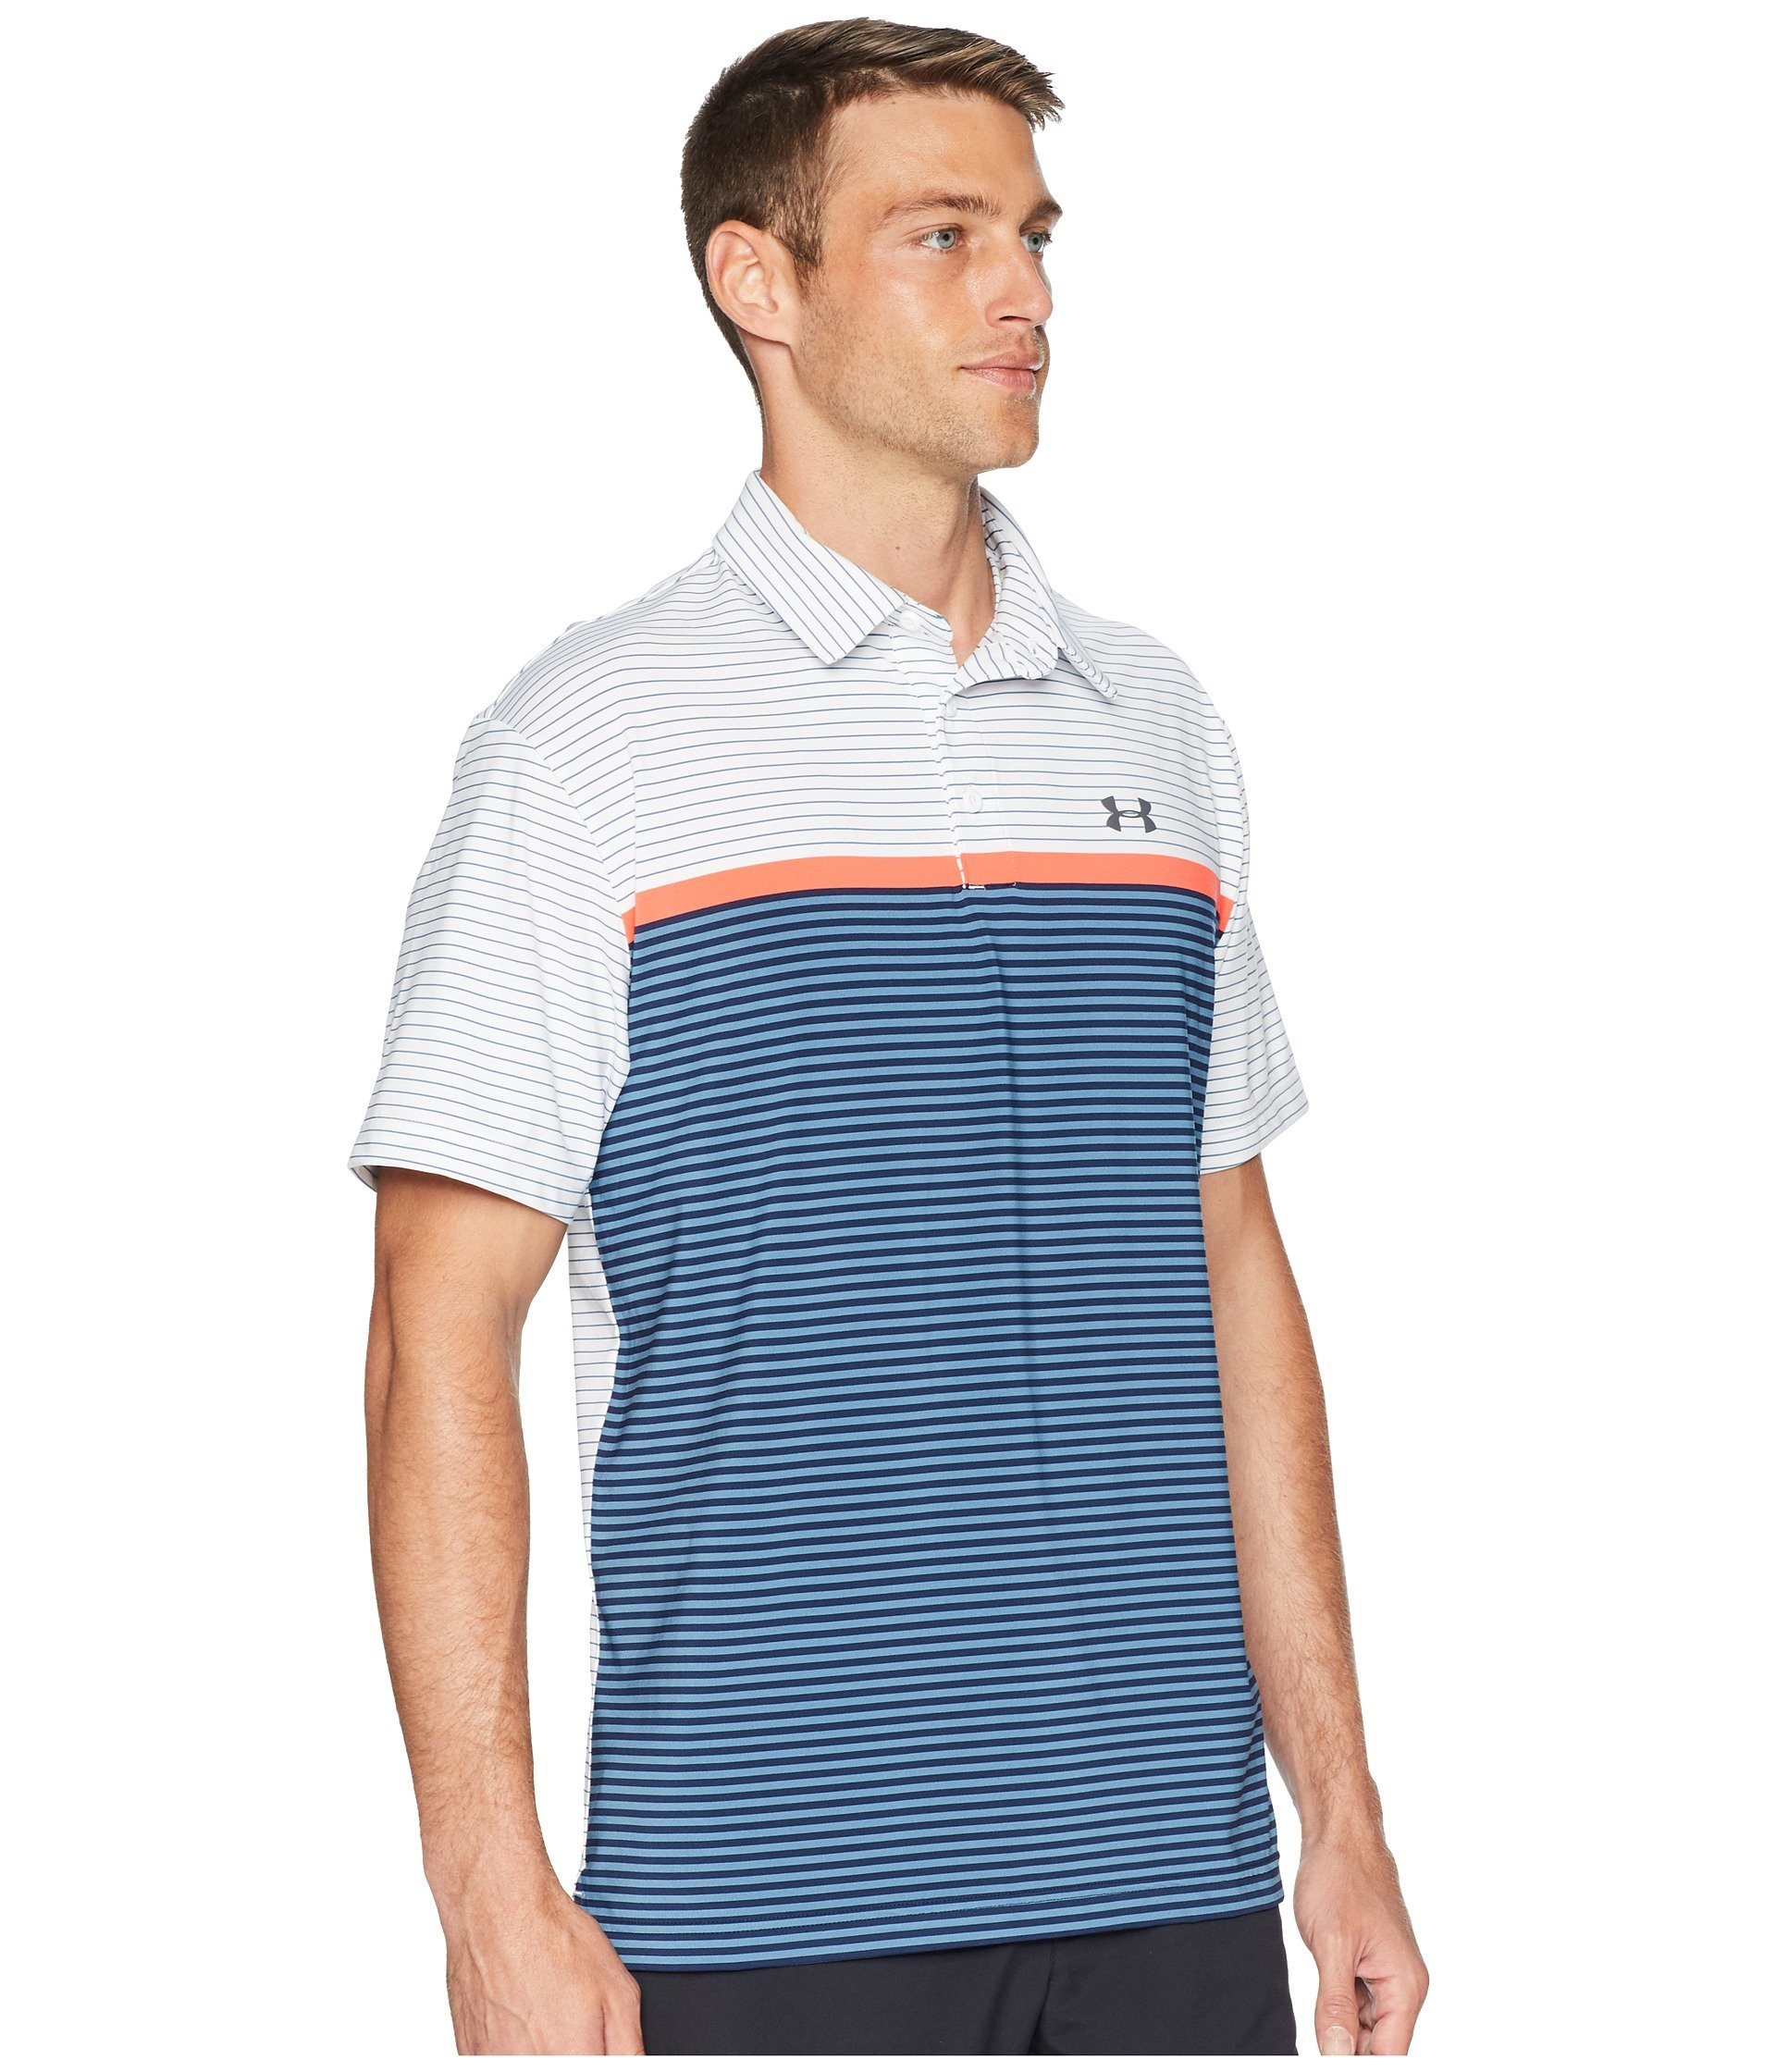 Under Armour Men's Playoff Polo, White (124)/Rhino Gray, X-Small by Under Armour (Image #5)